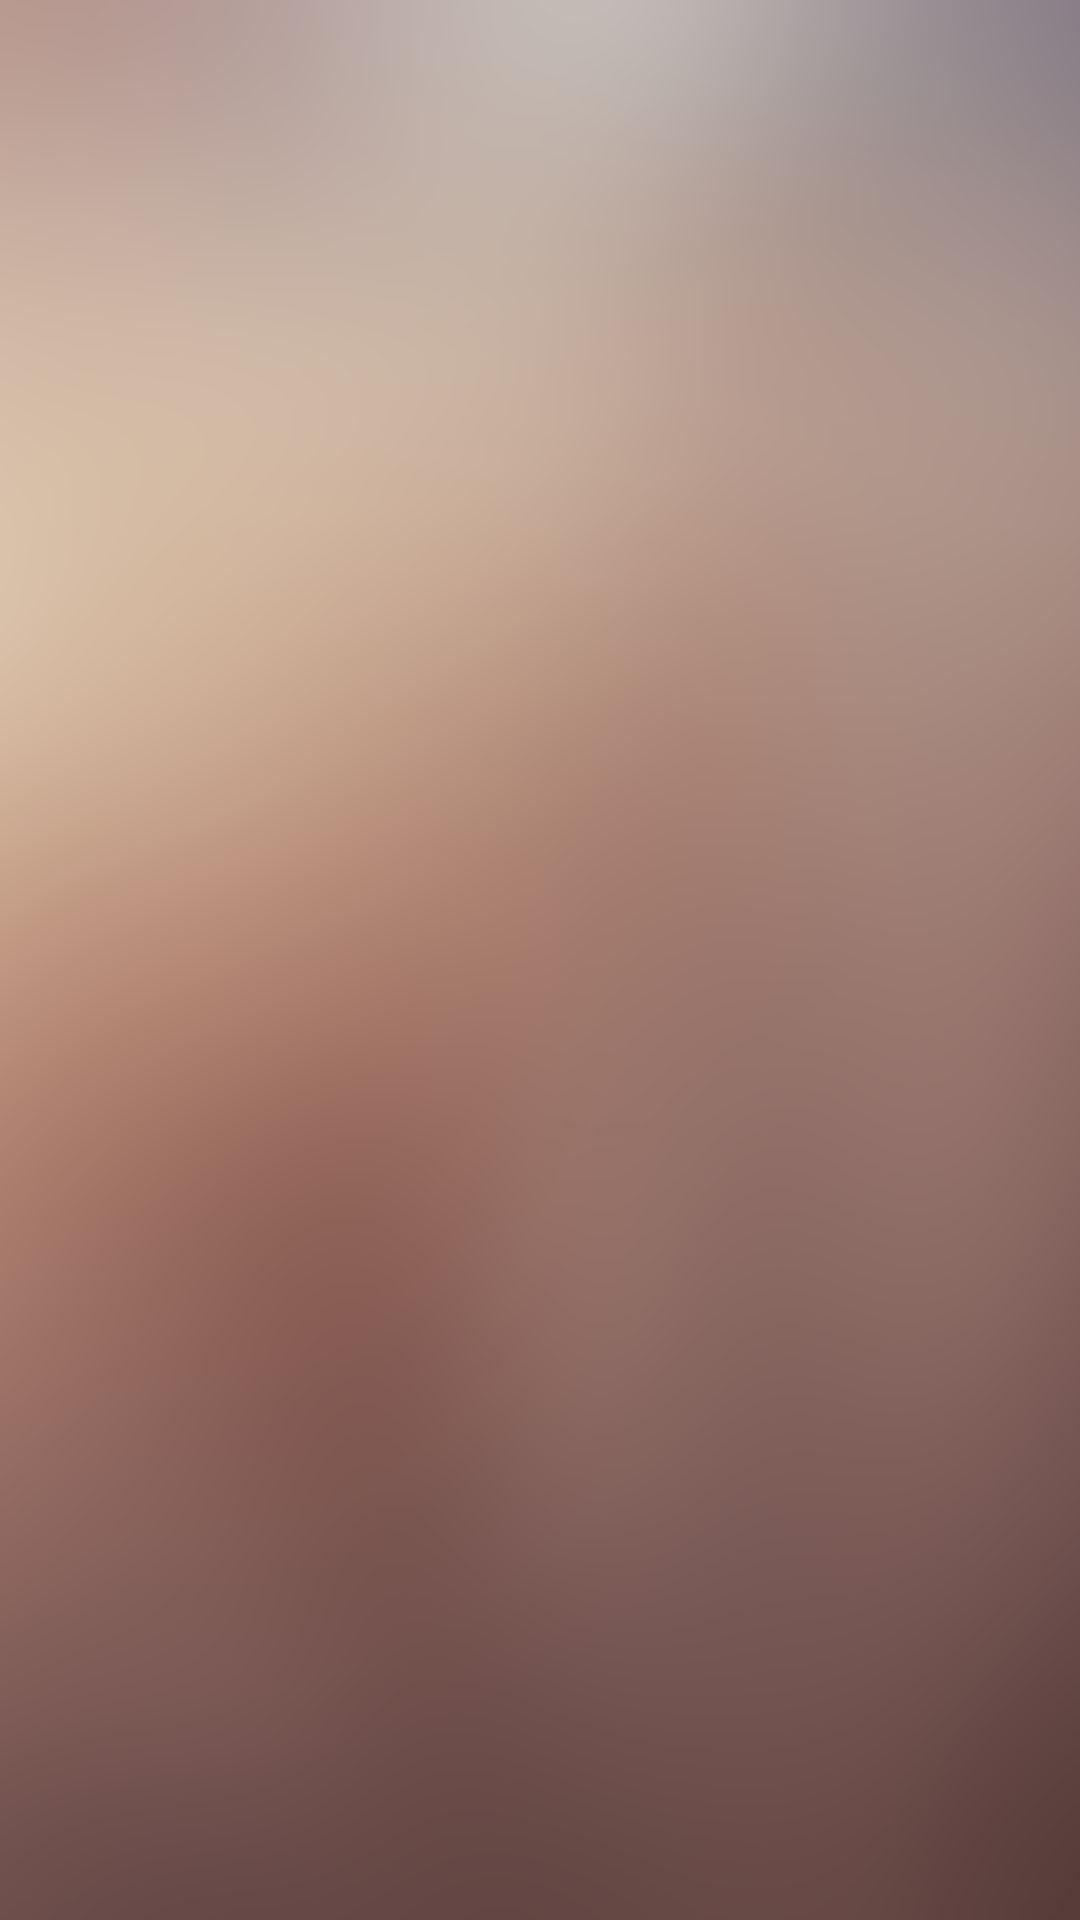 Light Brown Gradient HTC Android Wallpaper …